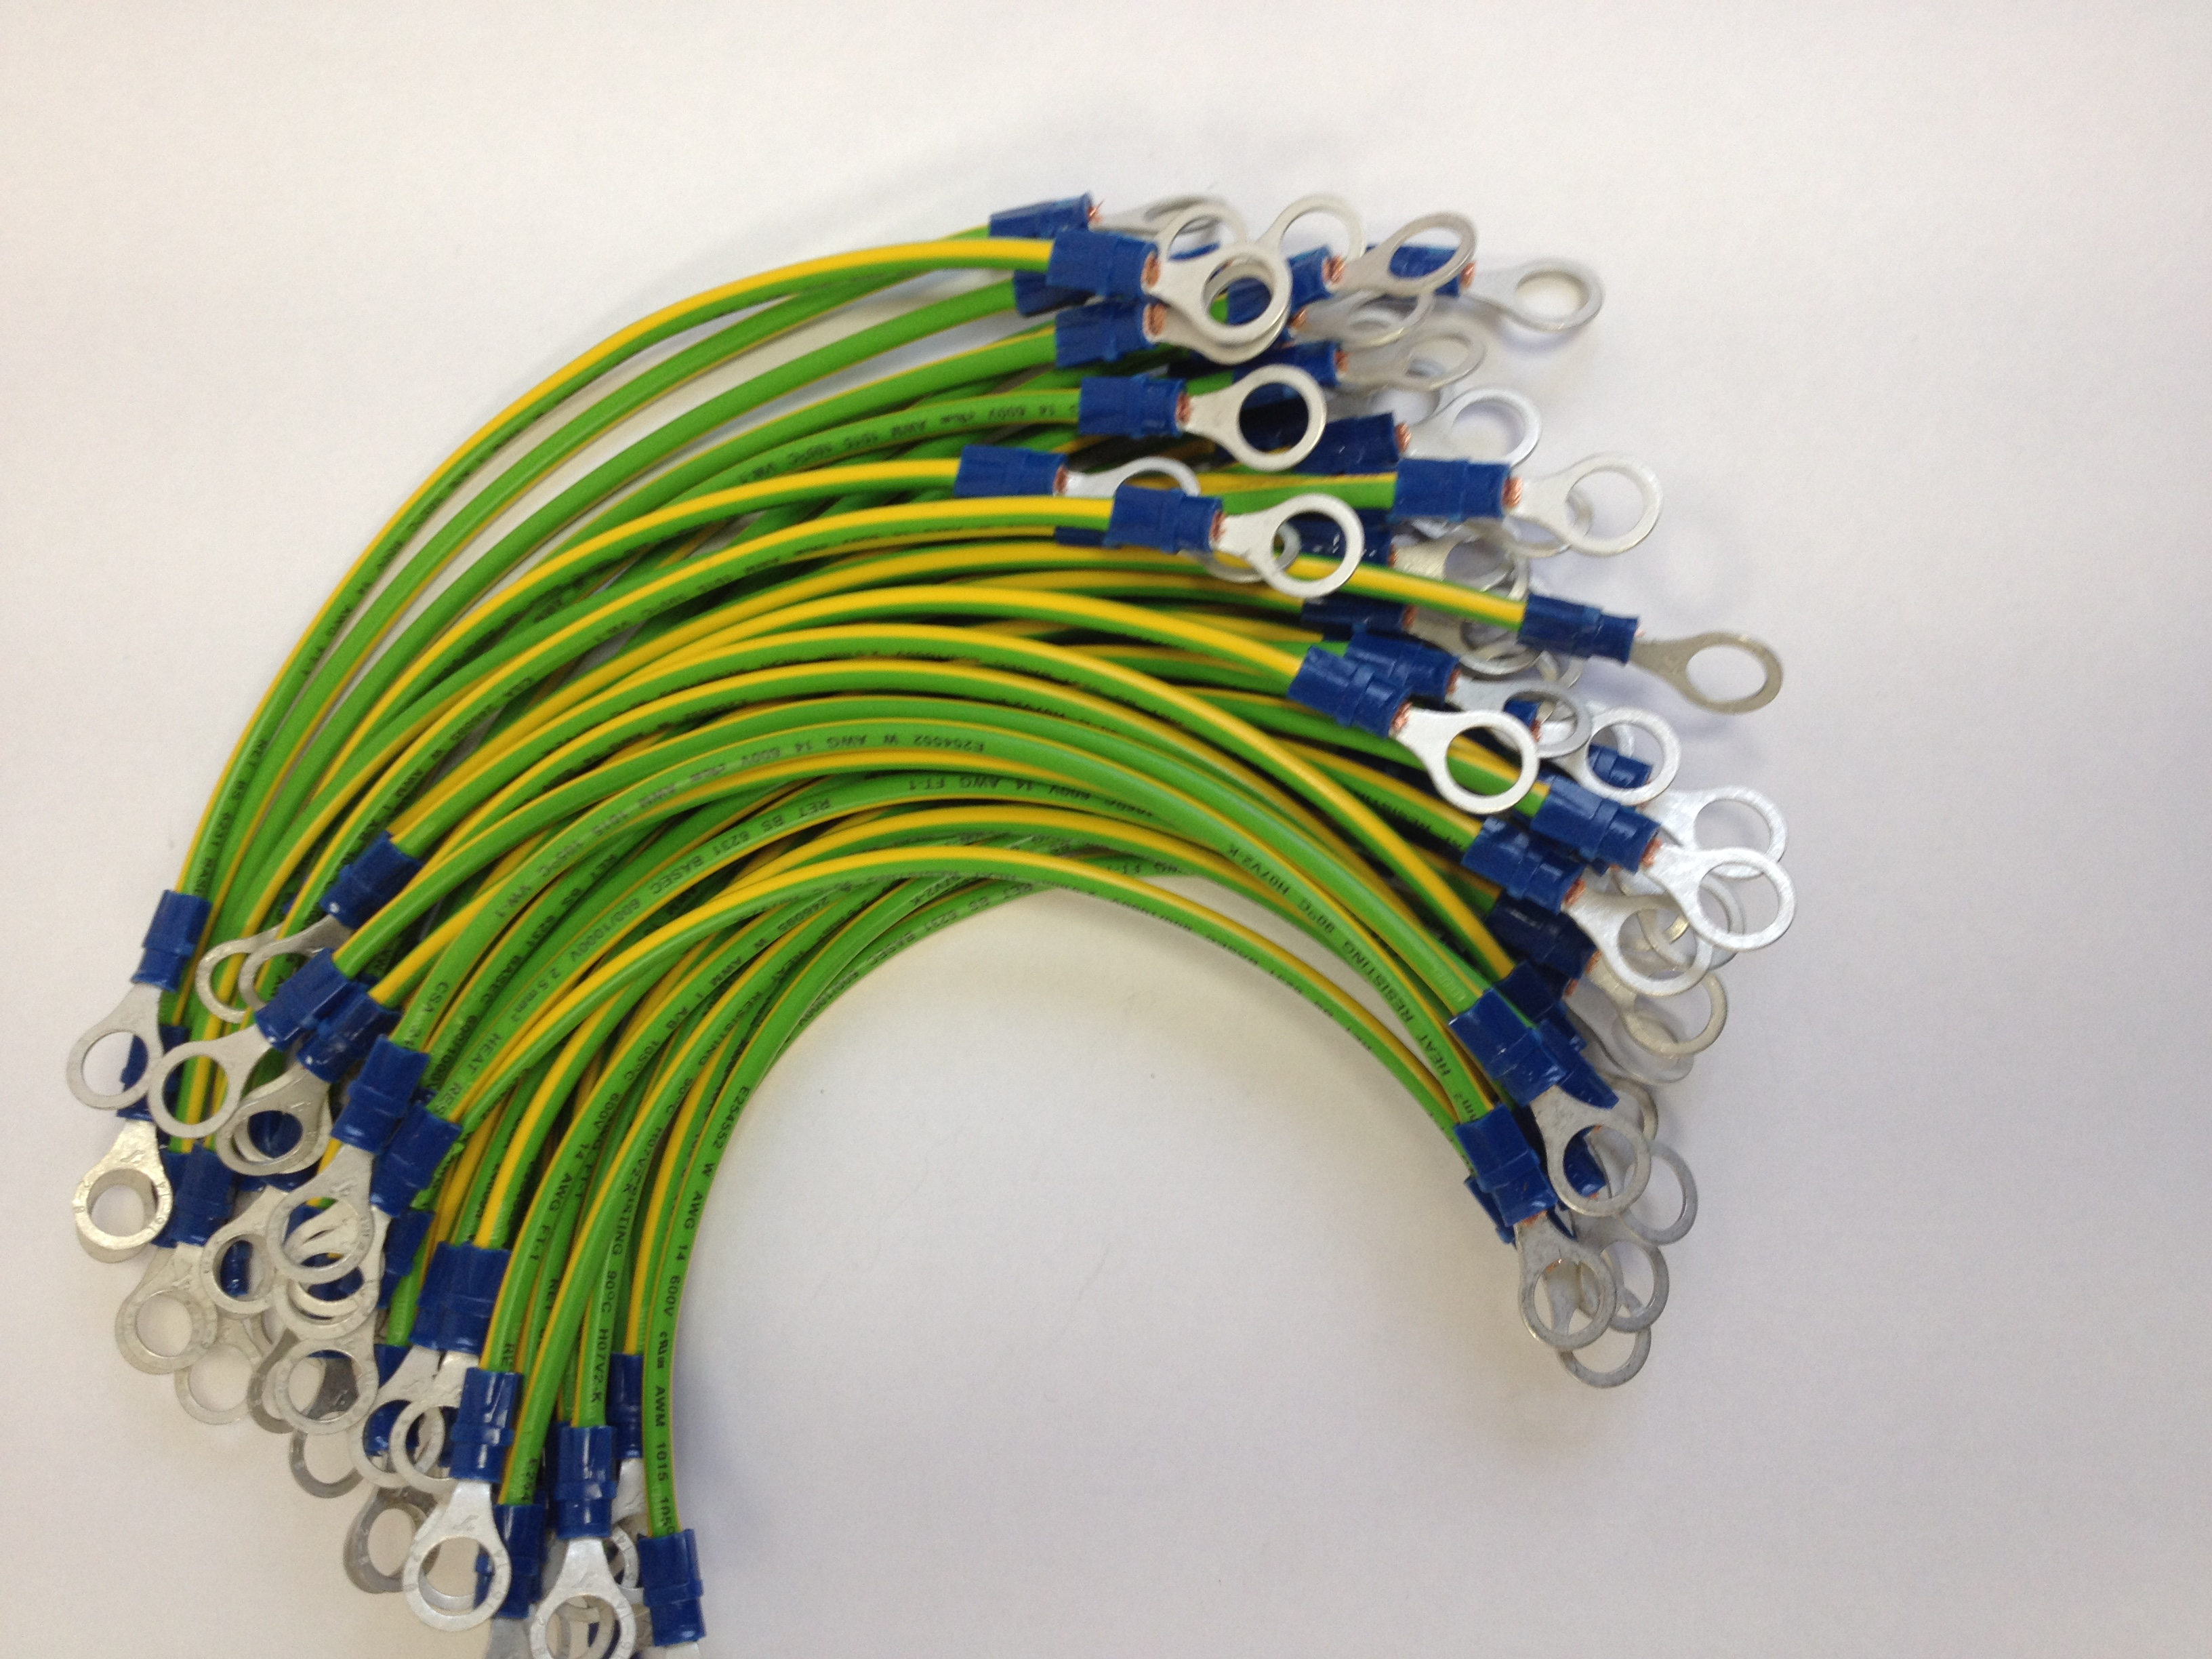 Custom Cable Manufacture Complete Connections Wiring Harness Uk We Data Audio Electrical Epos Cables As Well Looms For Multiple Applications